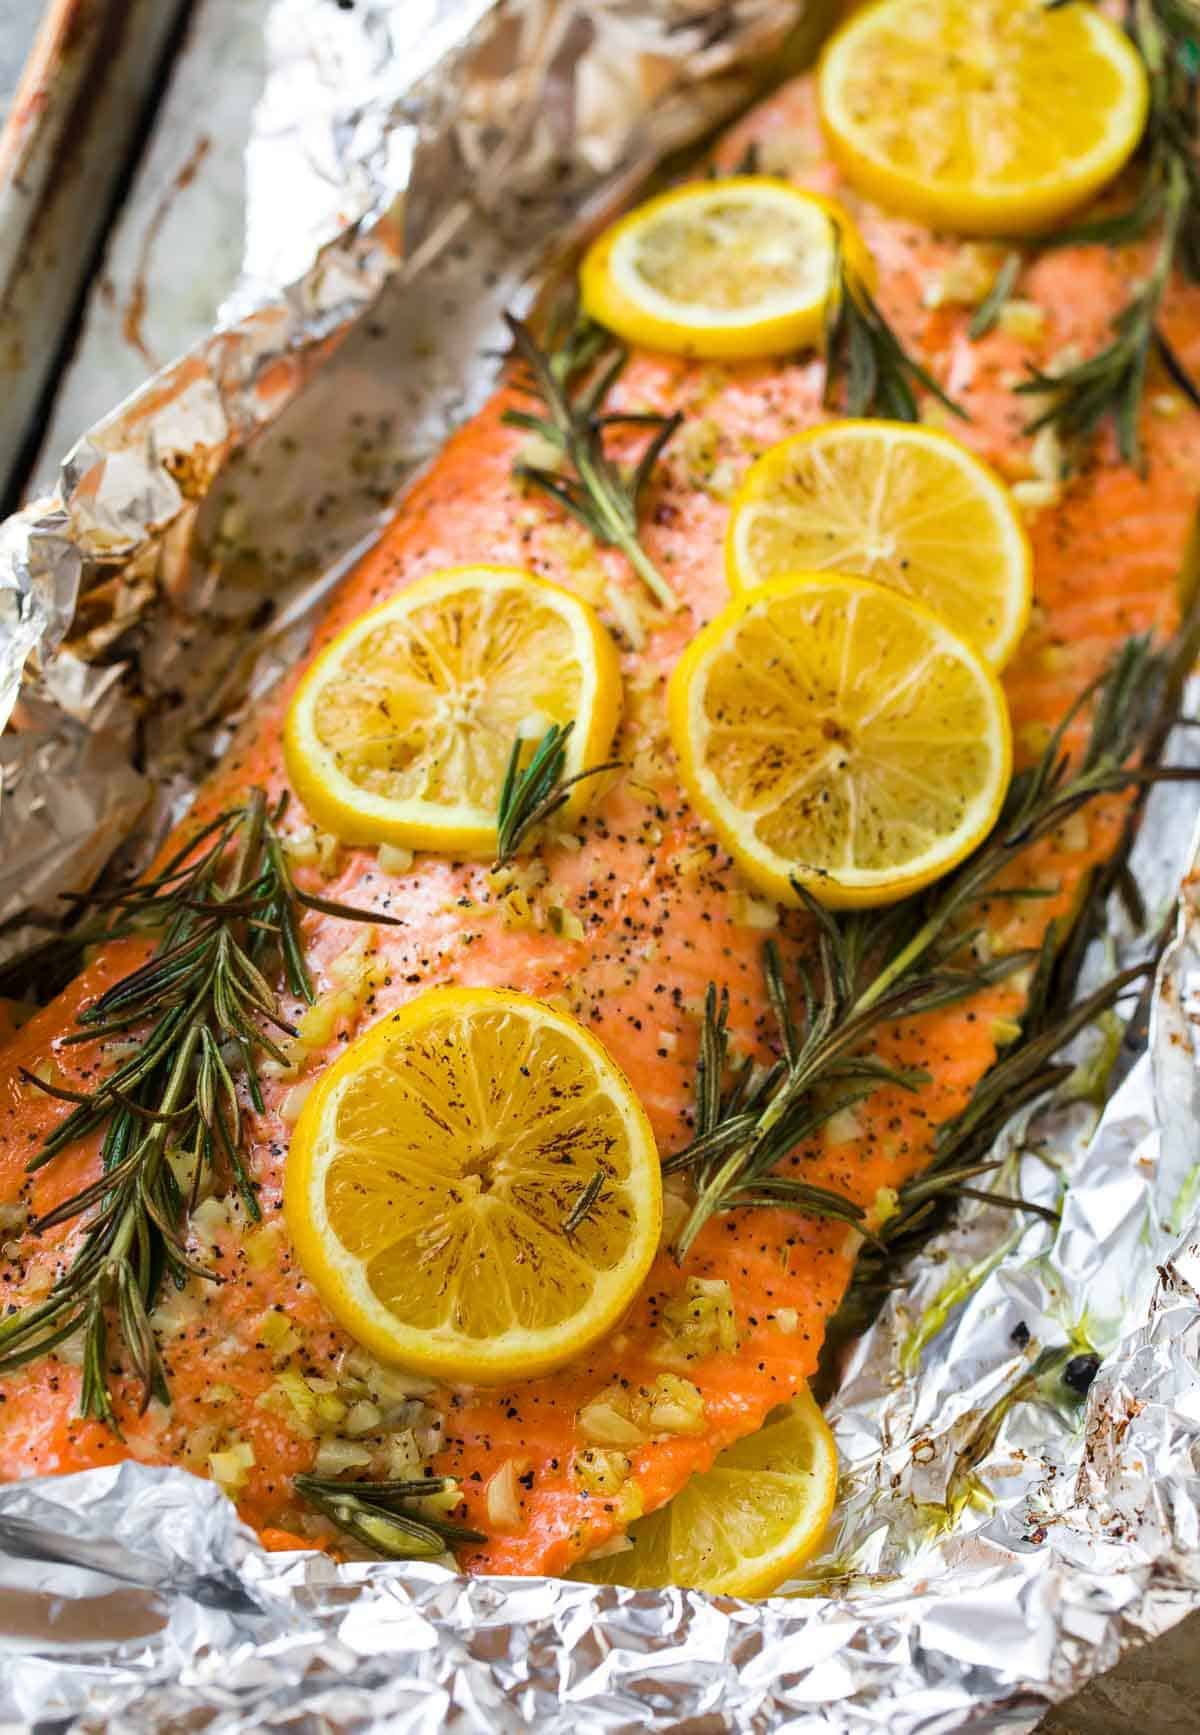 Garlic Baked Salmon in Foil. A heathy, easy baked salmon recipe.